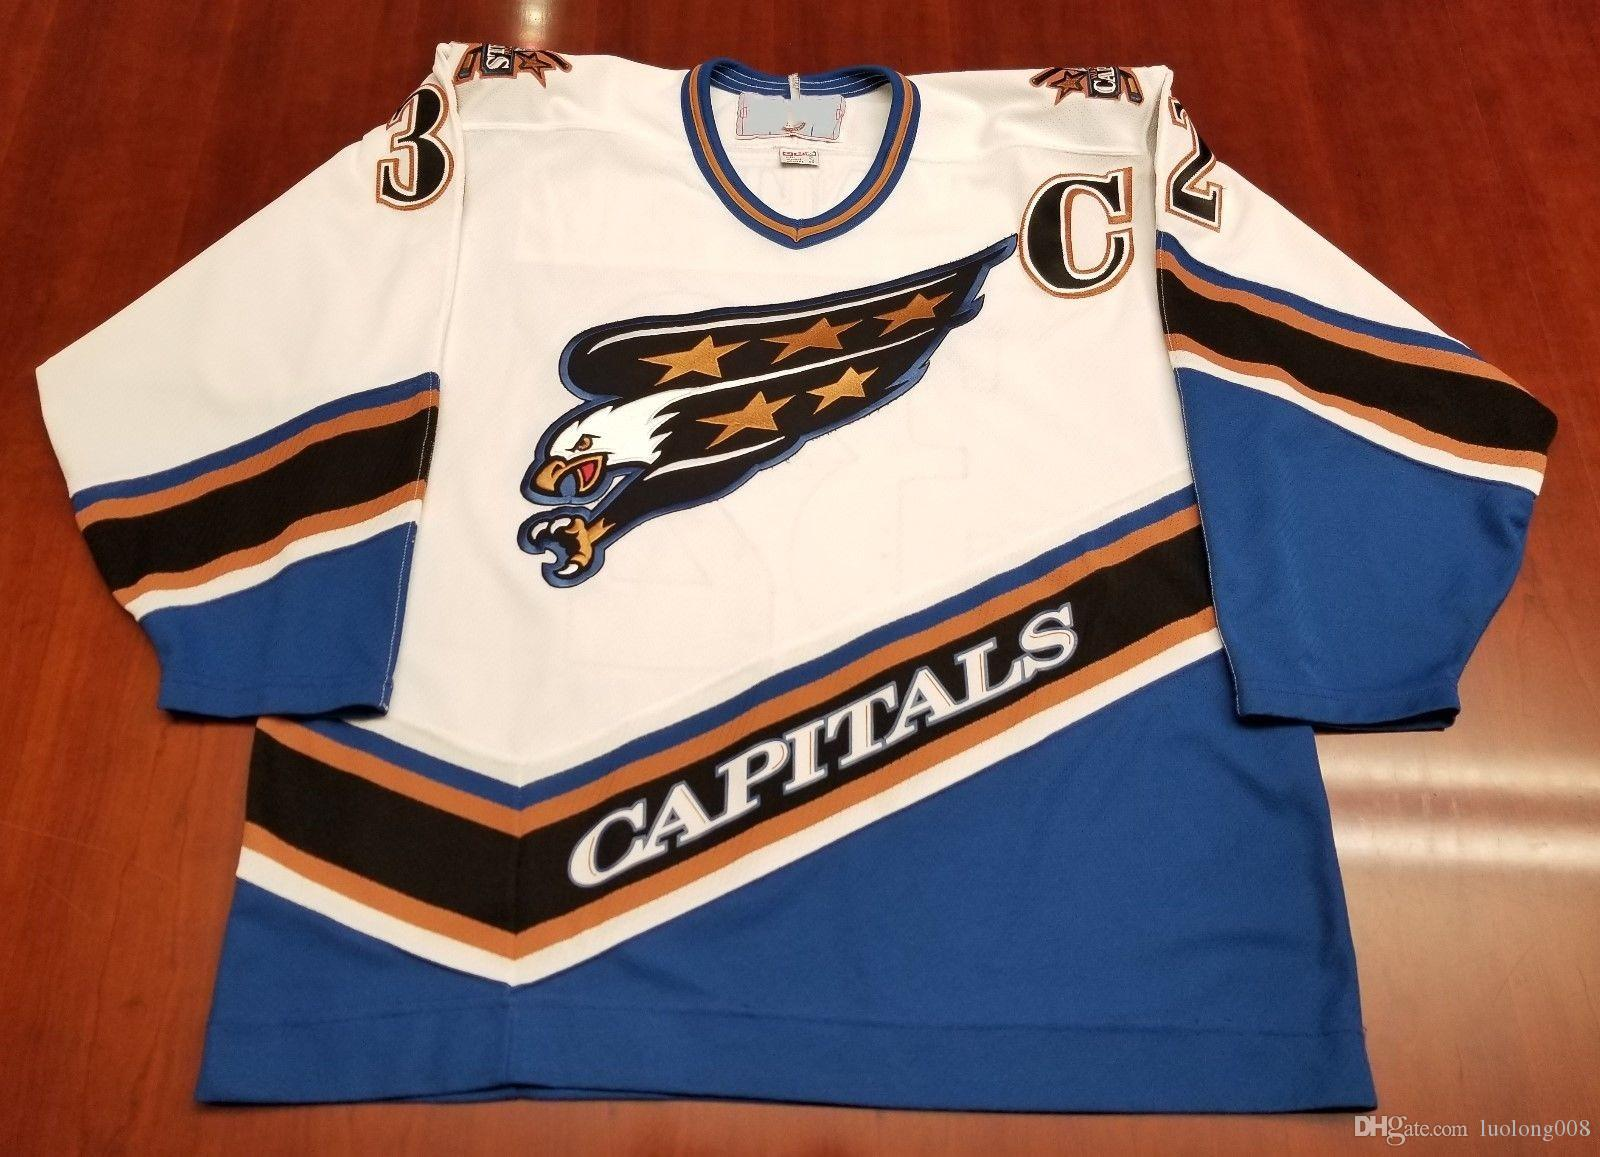 Vintage Washington Capitals Screaming Eagle  32 Dale Hunter Hockey Jersey  Embroidery Stitched Customize Any Number And Name Jerseys UK 2019 From  Luolong008 16da8f5fea9